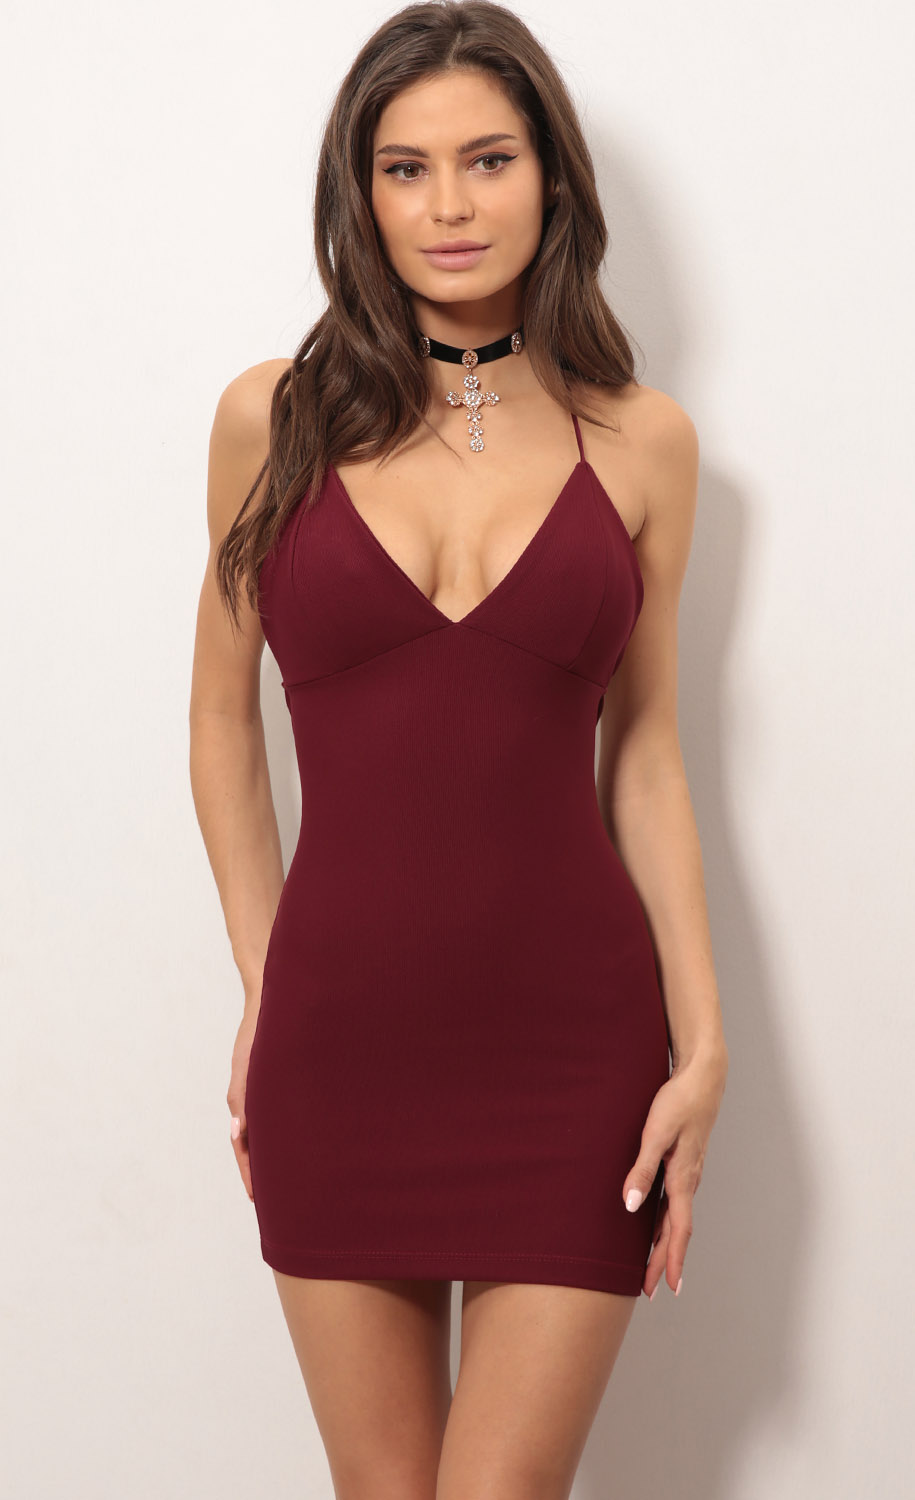 Party dresses   Lace Back Bodycon Dress In Burgundy 9c69bdeba4a4